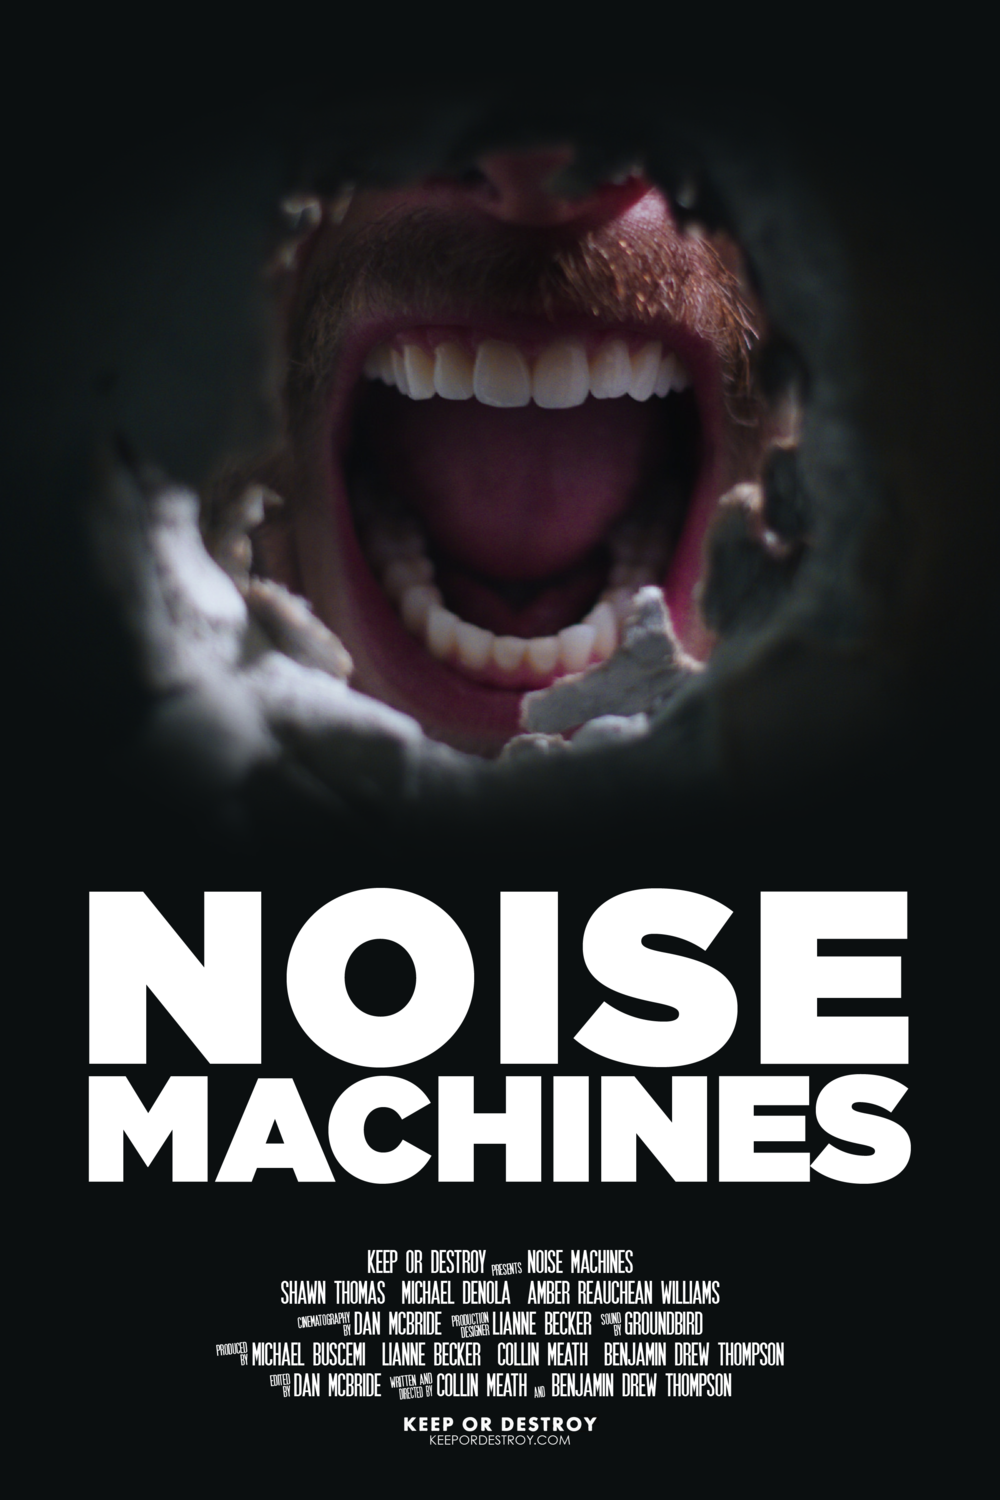 NOISE MACHINES - Currently in it's festival run, Noise Machines is the story of a Brooklyn drummer who begins hearing an irritating sound coming from within his bedroom walls and stops at nothing to eradicate it. In following an increasingly destructive path, he is confronted with the dangerous reality of toxic masculinity.